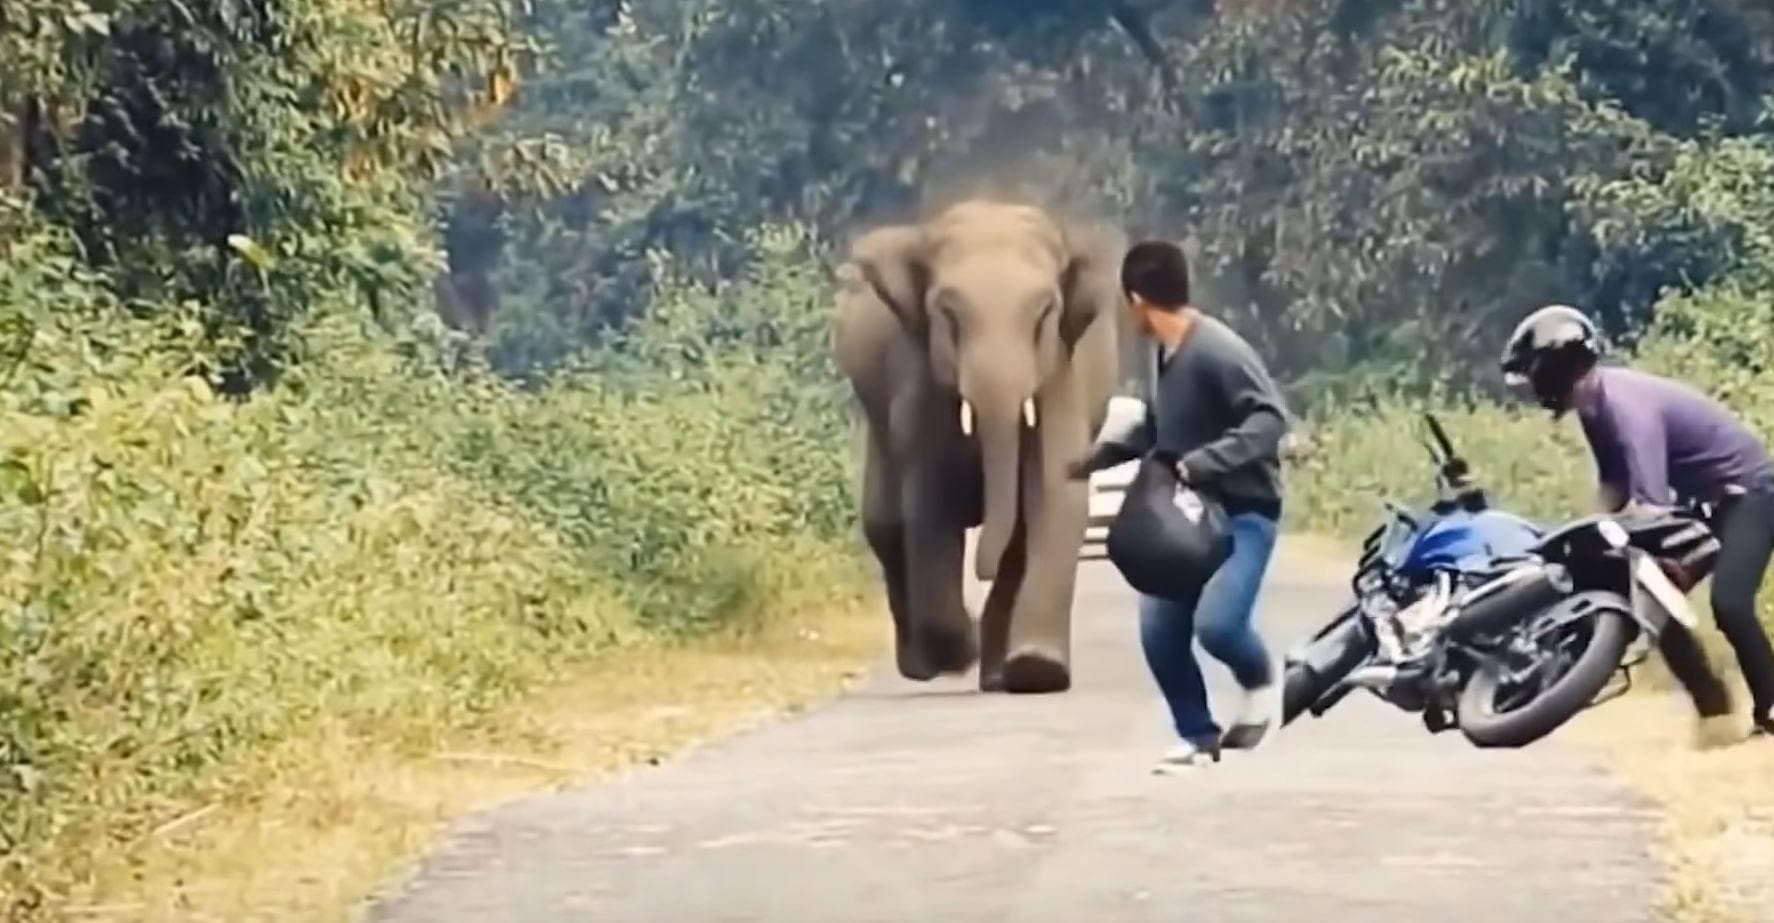 People Who Survived Wild Animal Attacks Tell Their Stories